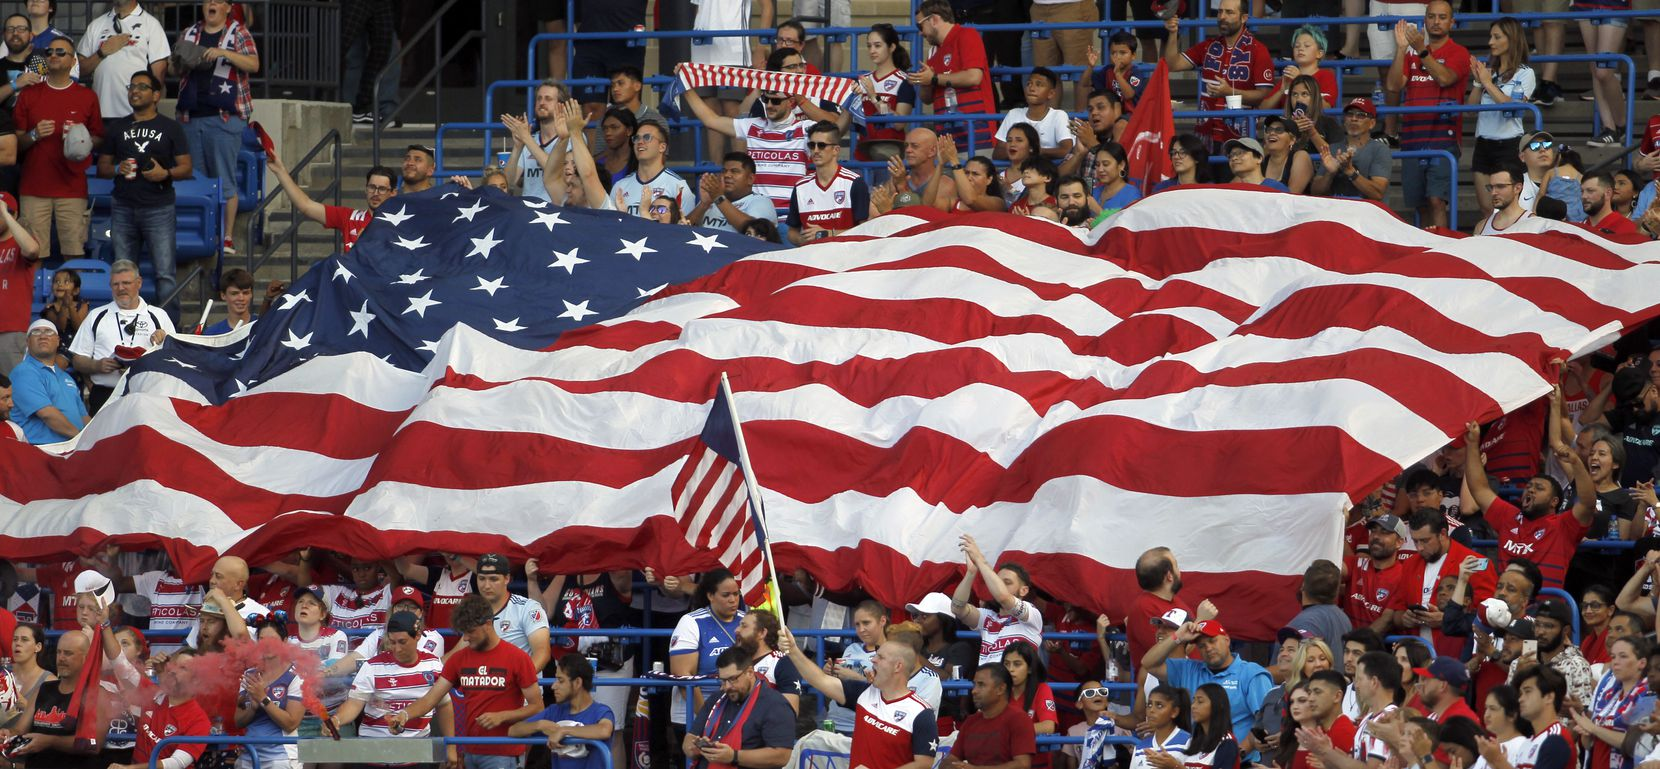 FC Dallas fans frame a Texas-sized American flag in the stands during the playing of the national anthem prior to the In dependance Day match between FC Dallas and the Vancouver Whitecaps. The two Major League Soccer teams played their match at Toyota Stadium in Frisco on July 4, 2021. (Steve Hamm/ Special Contributor)